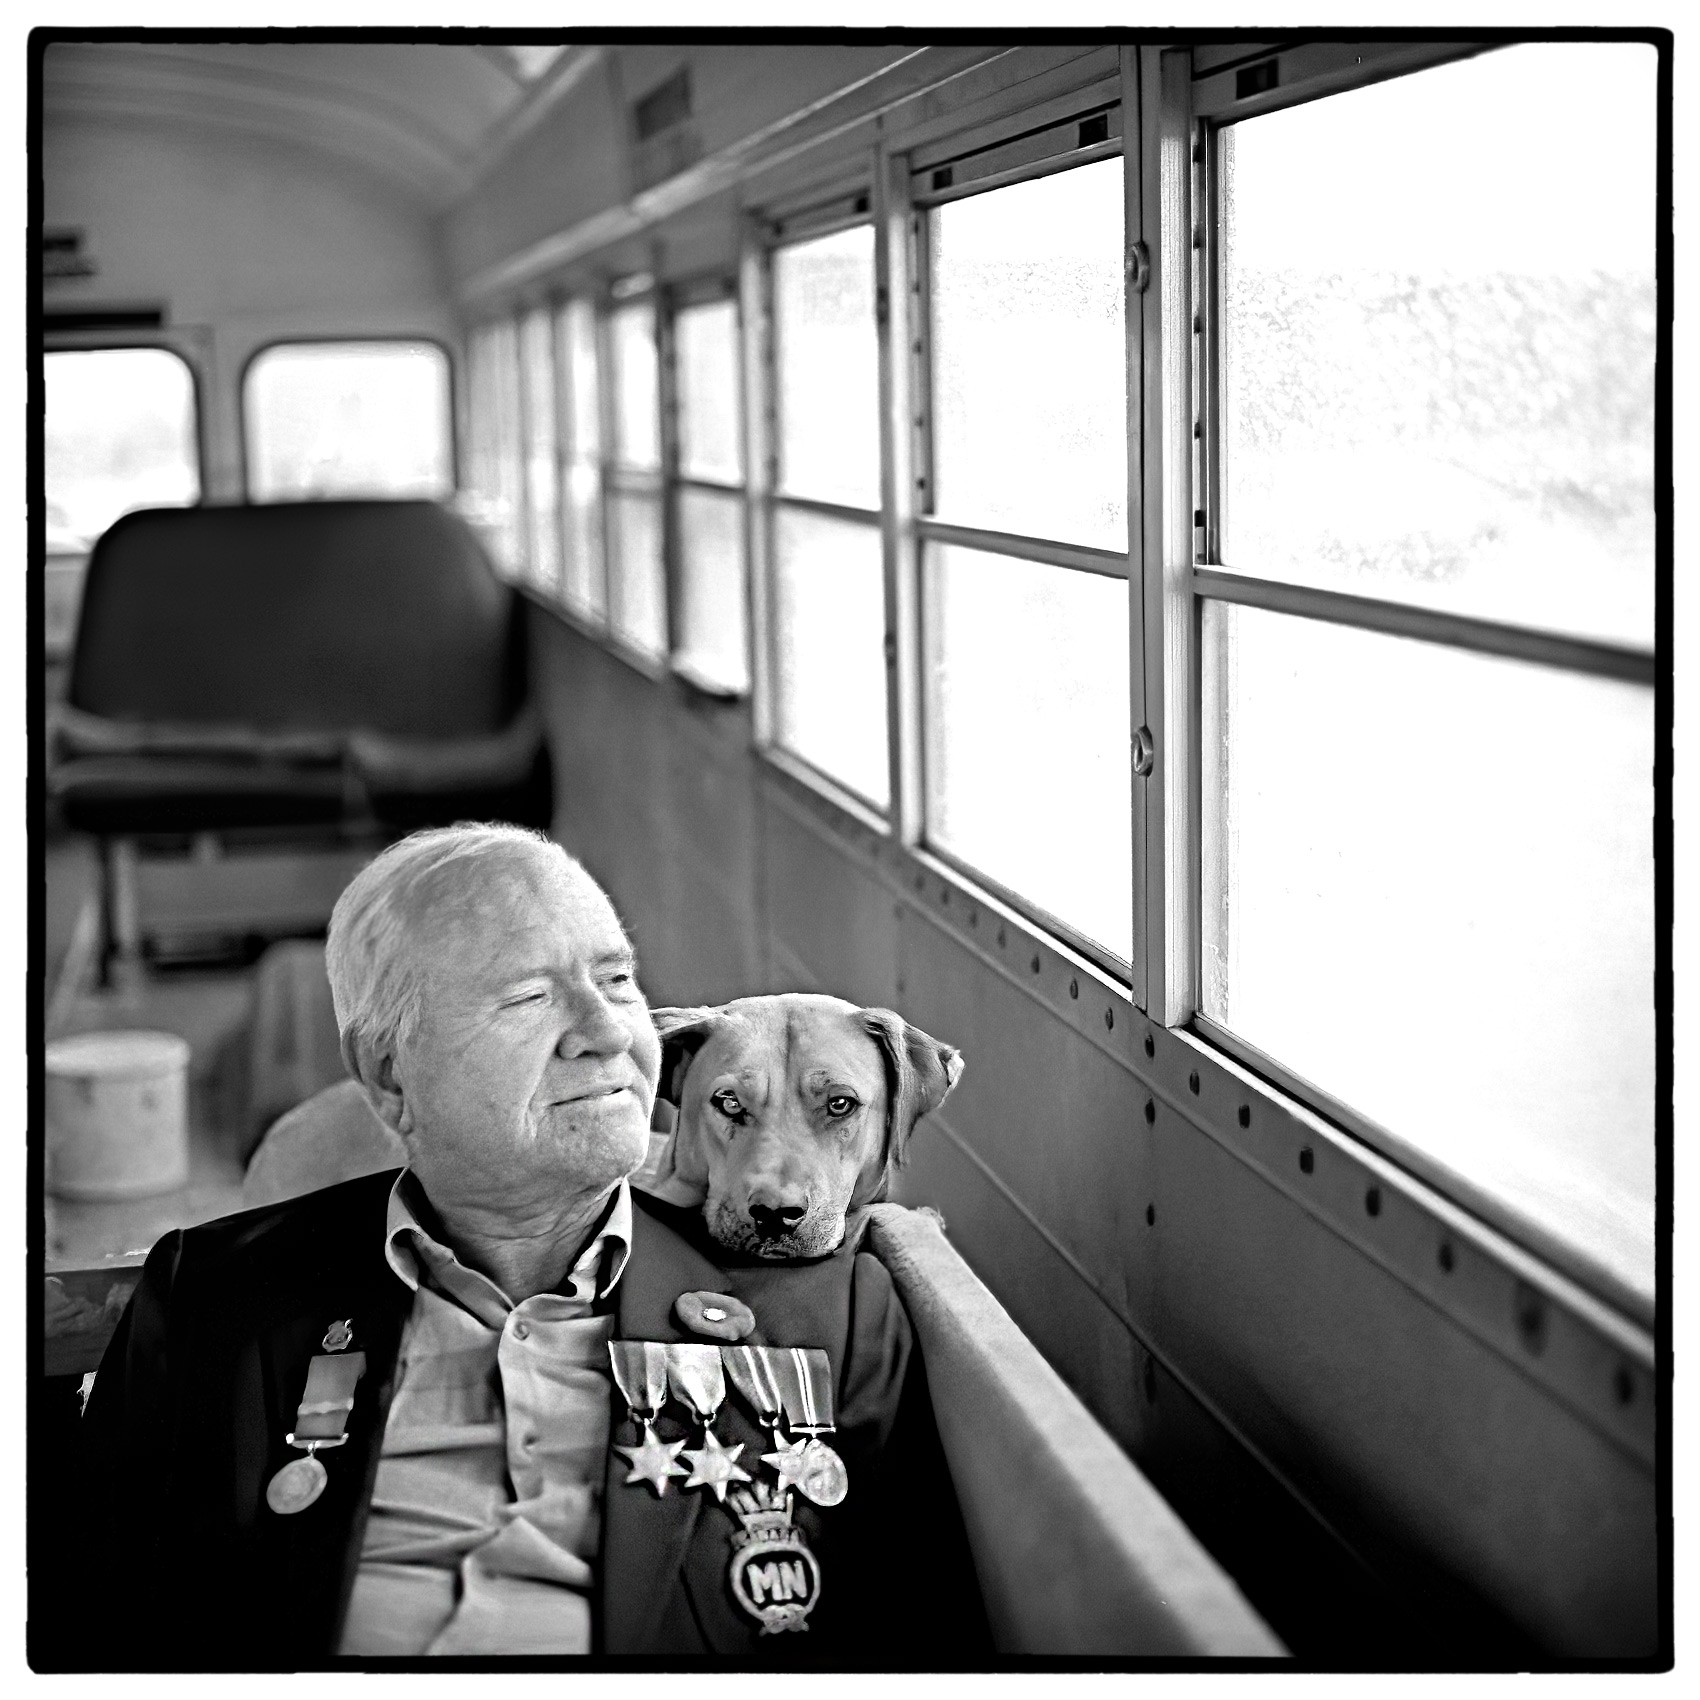 a-war-veteran-and-his-dog-who-live-in-a-school-bus-in-ottawa